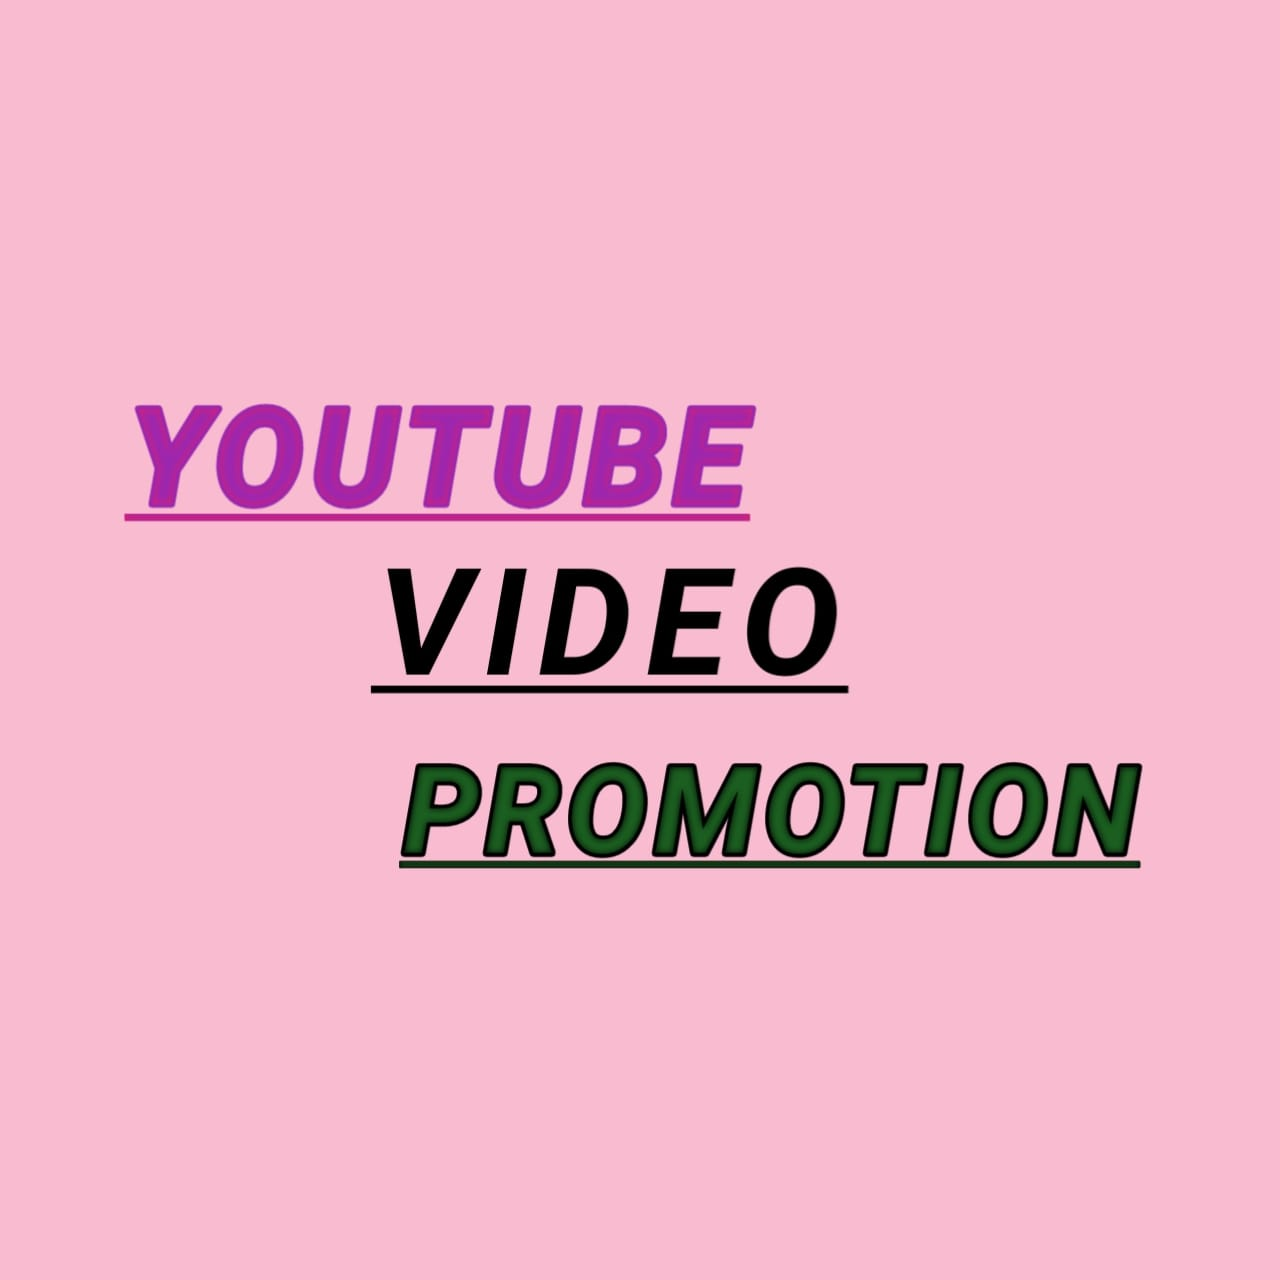 Provide Organic YouTube Promotion with Video Marketing